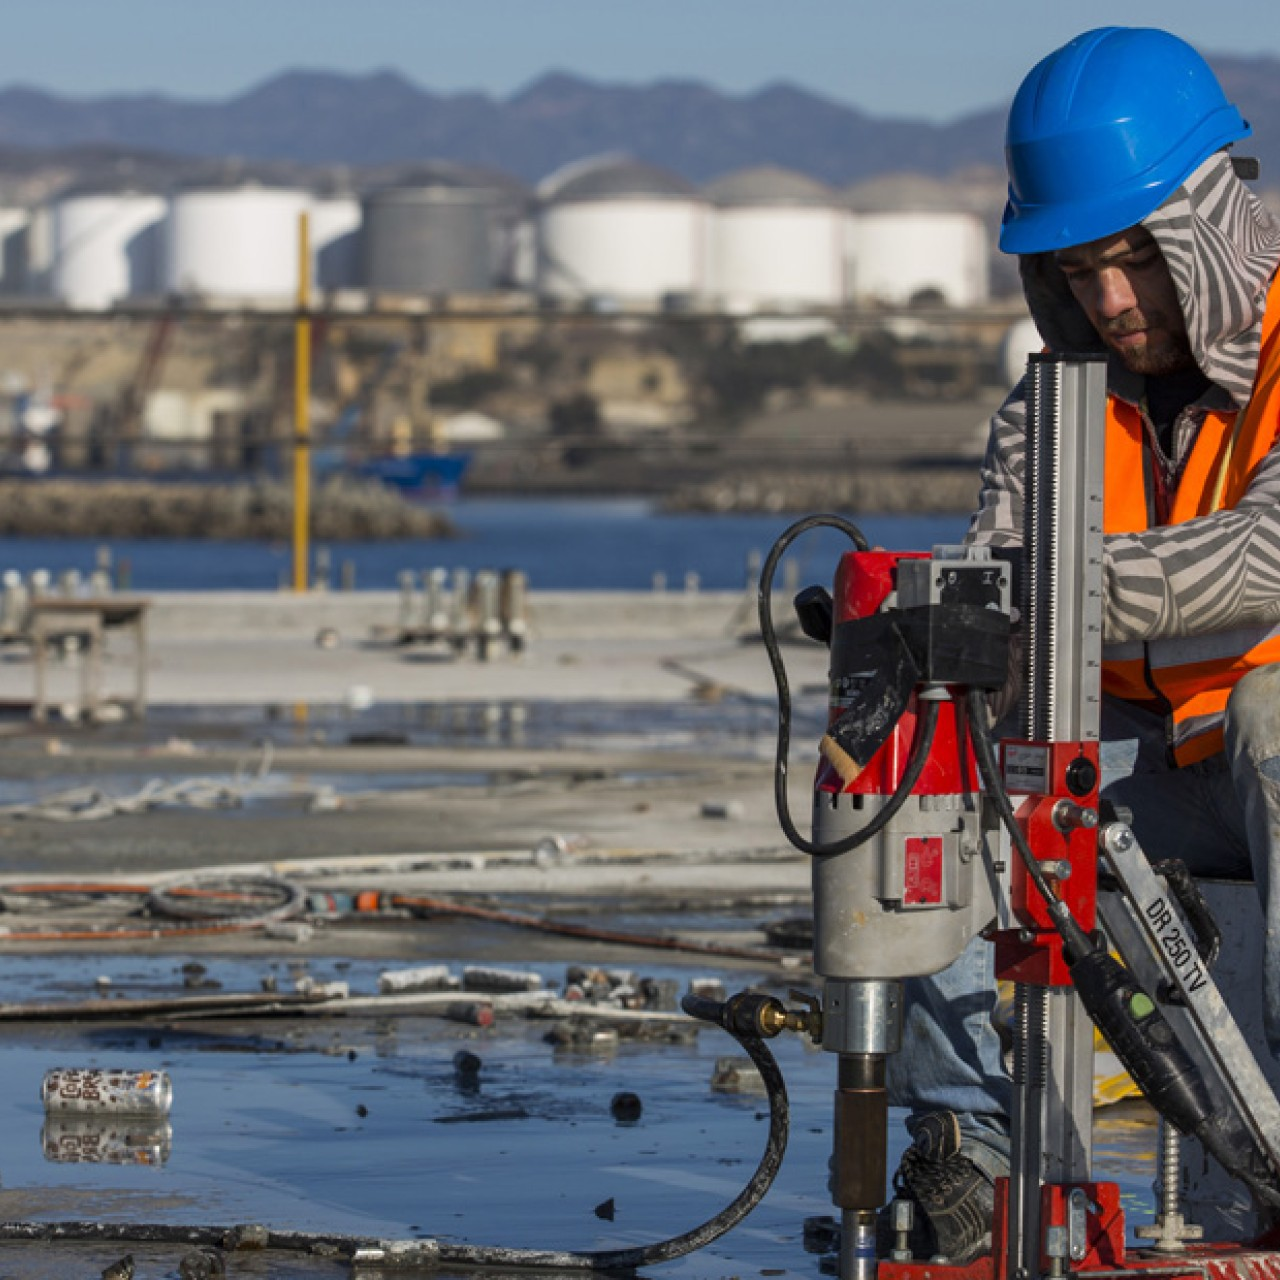 SPT dismisses concerns over cost cuts at oil giants | South